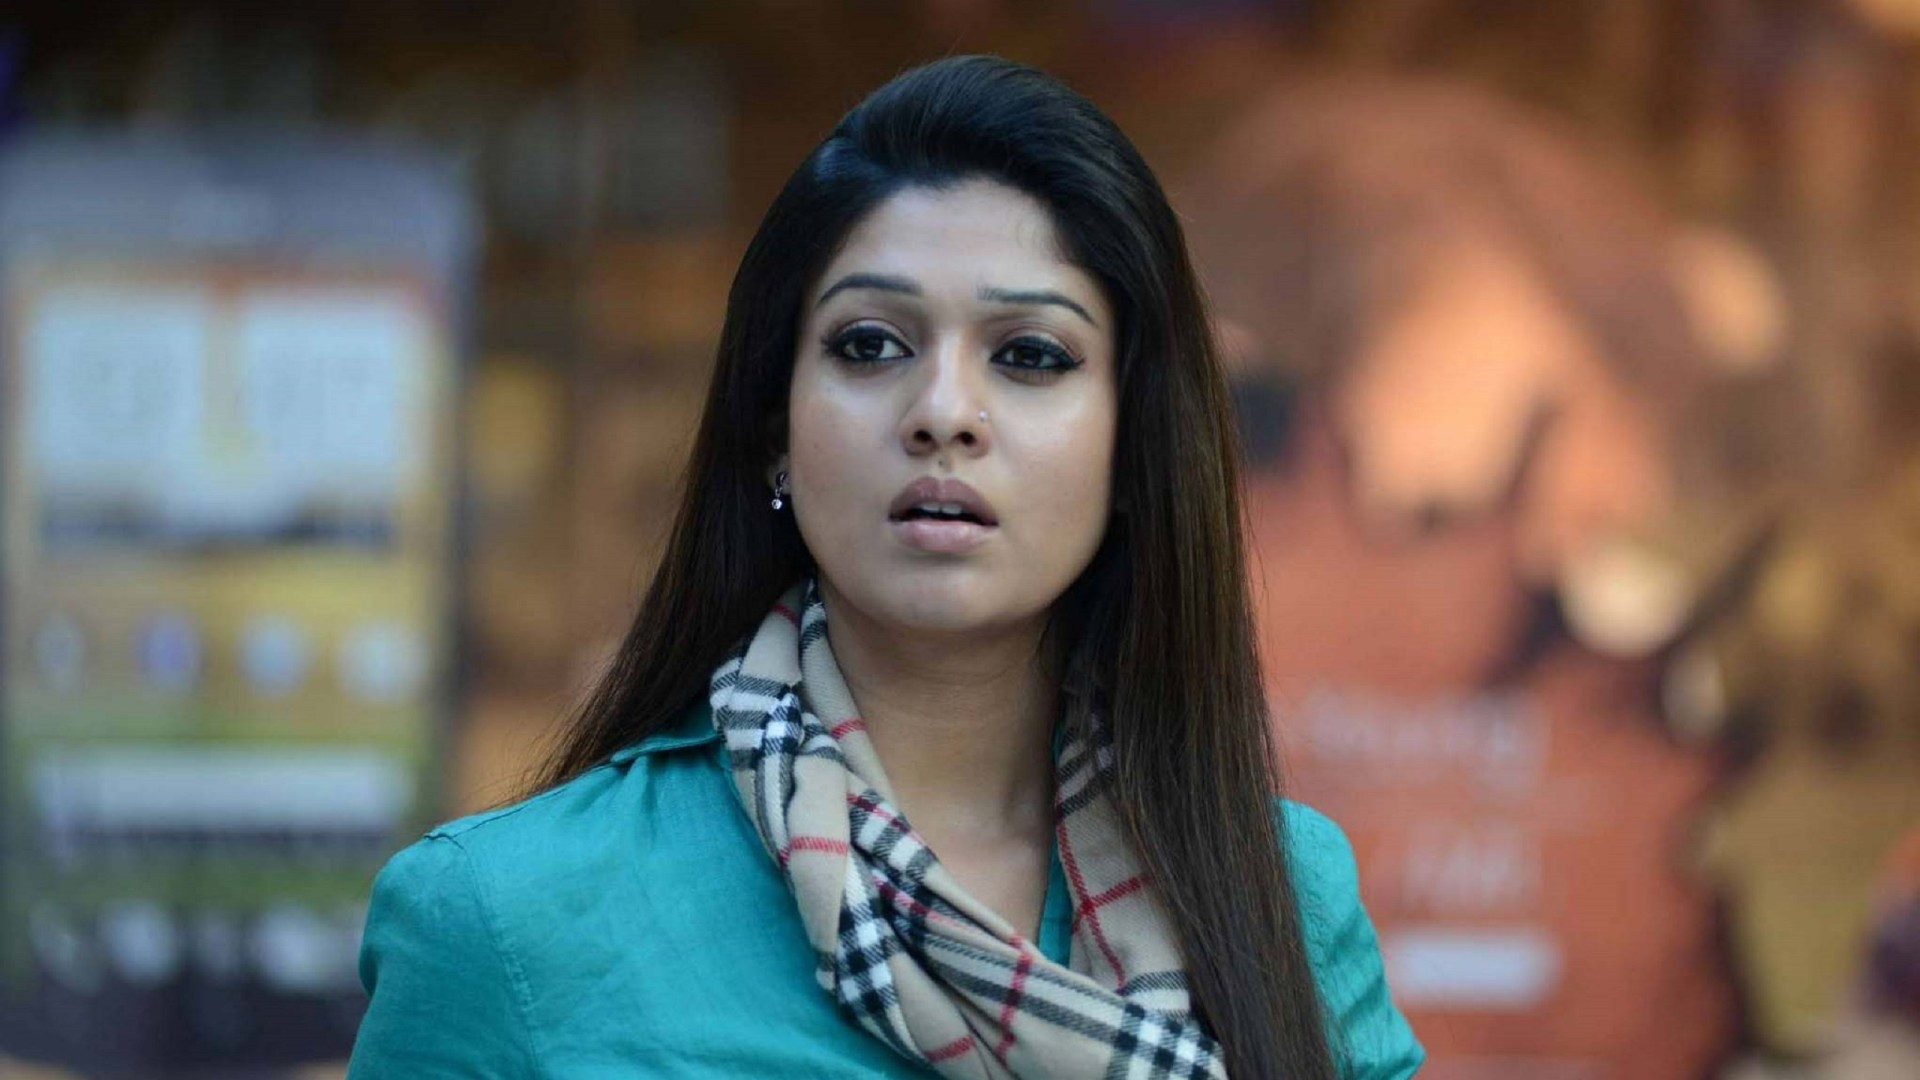 Desktop Nayanthara Shocking Look Free Background Mobile Hd Images